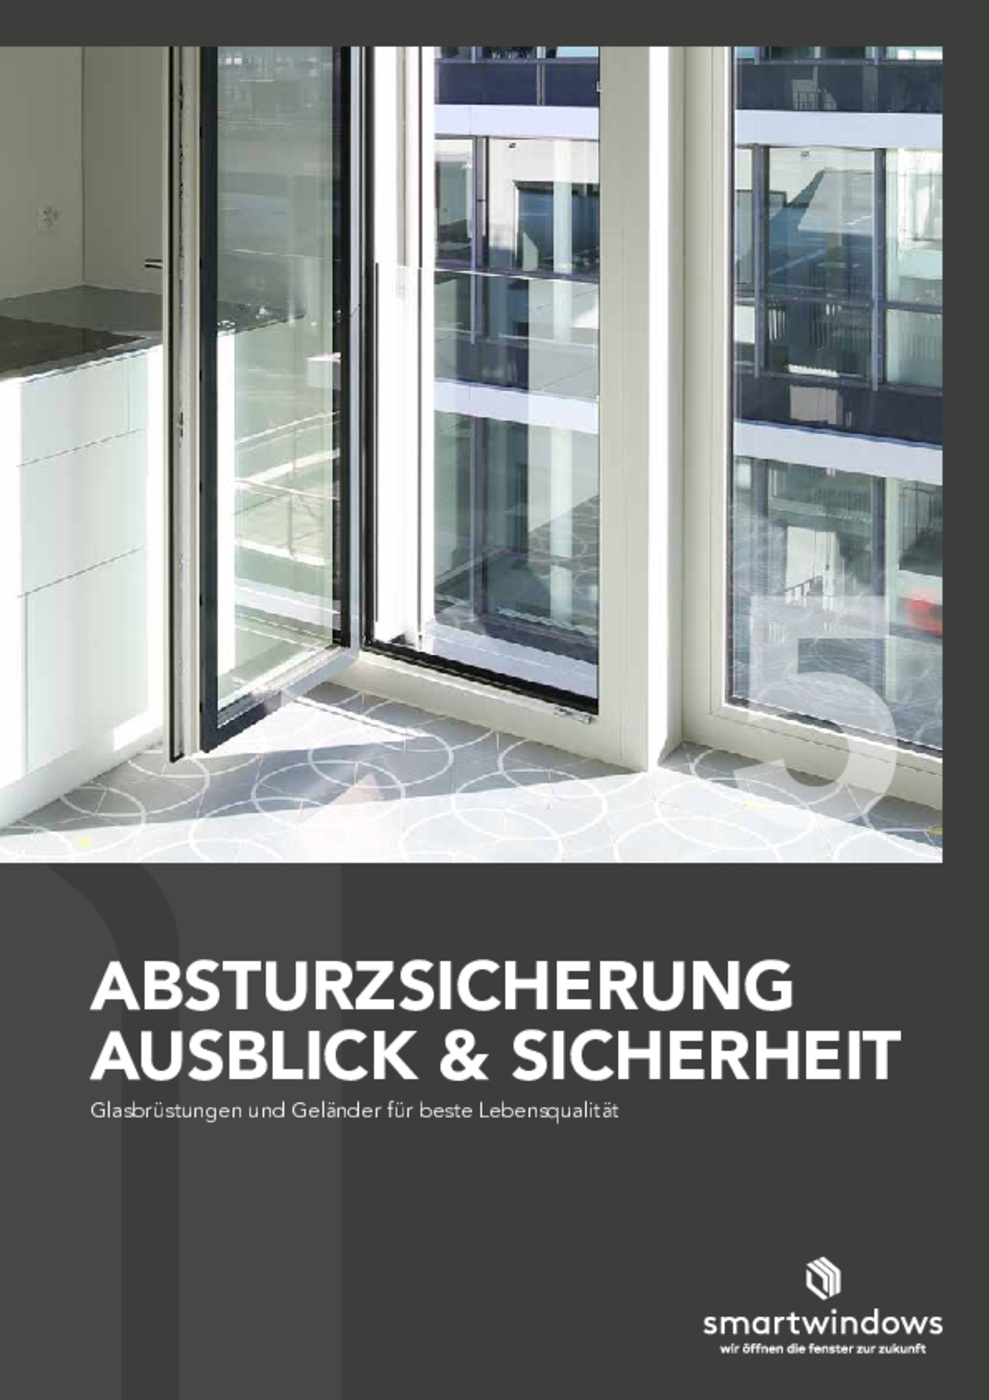 05_Absturzsicherung_DE_122020_ES_web.pdf